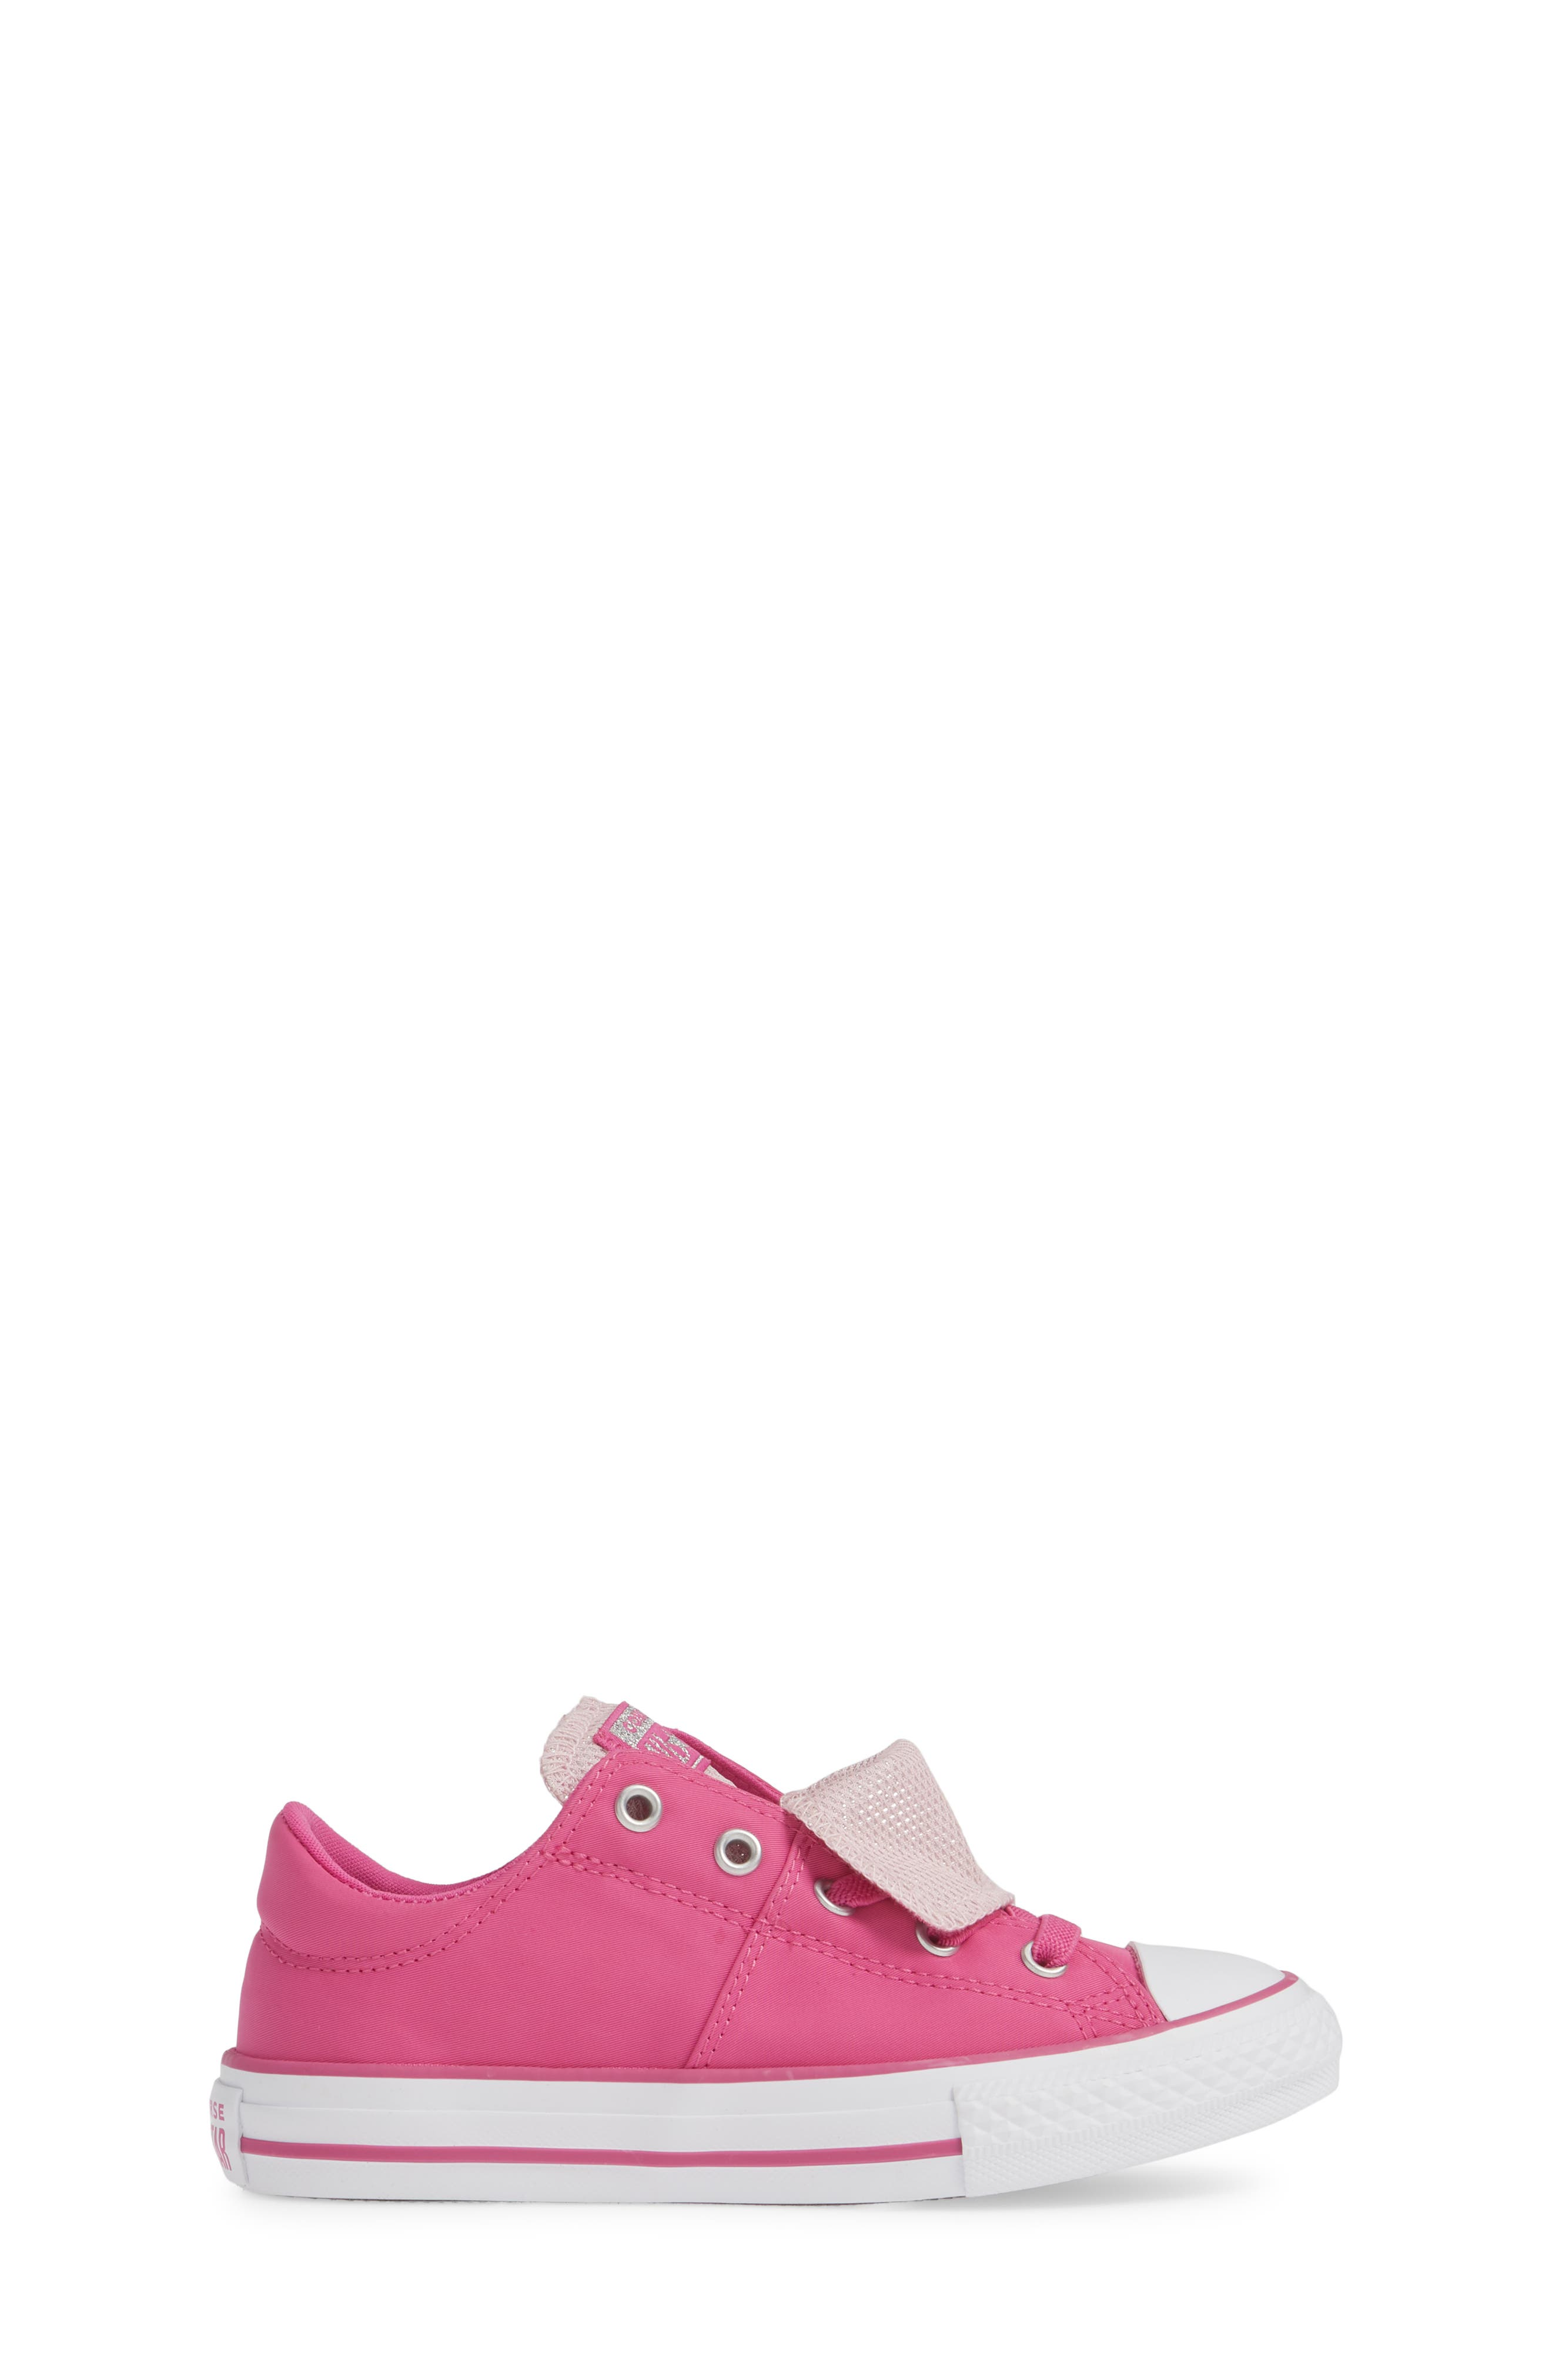 ,                             Chuck Taylor<sup>®</sup> All Star<sup>®</sup> Maddie Double Tongue Sneaker,                             Alternate thumbnail 33, color,                             650